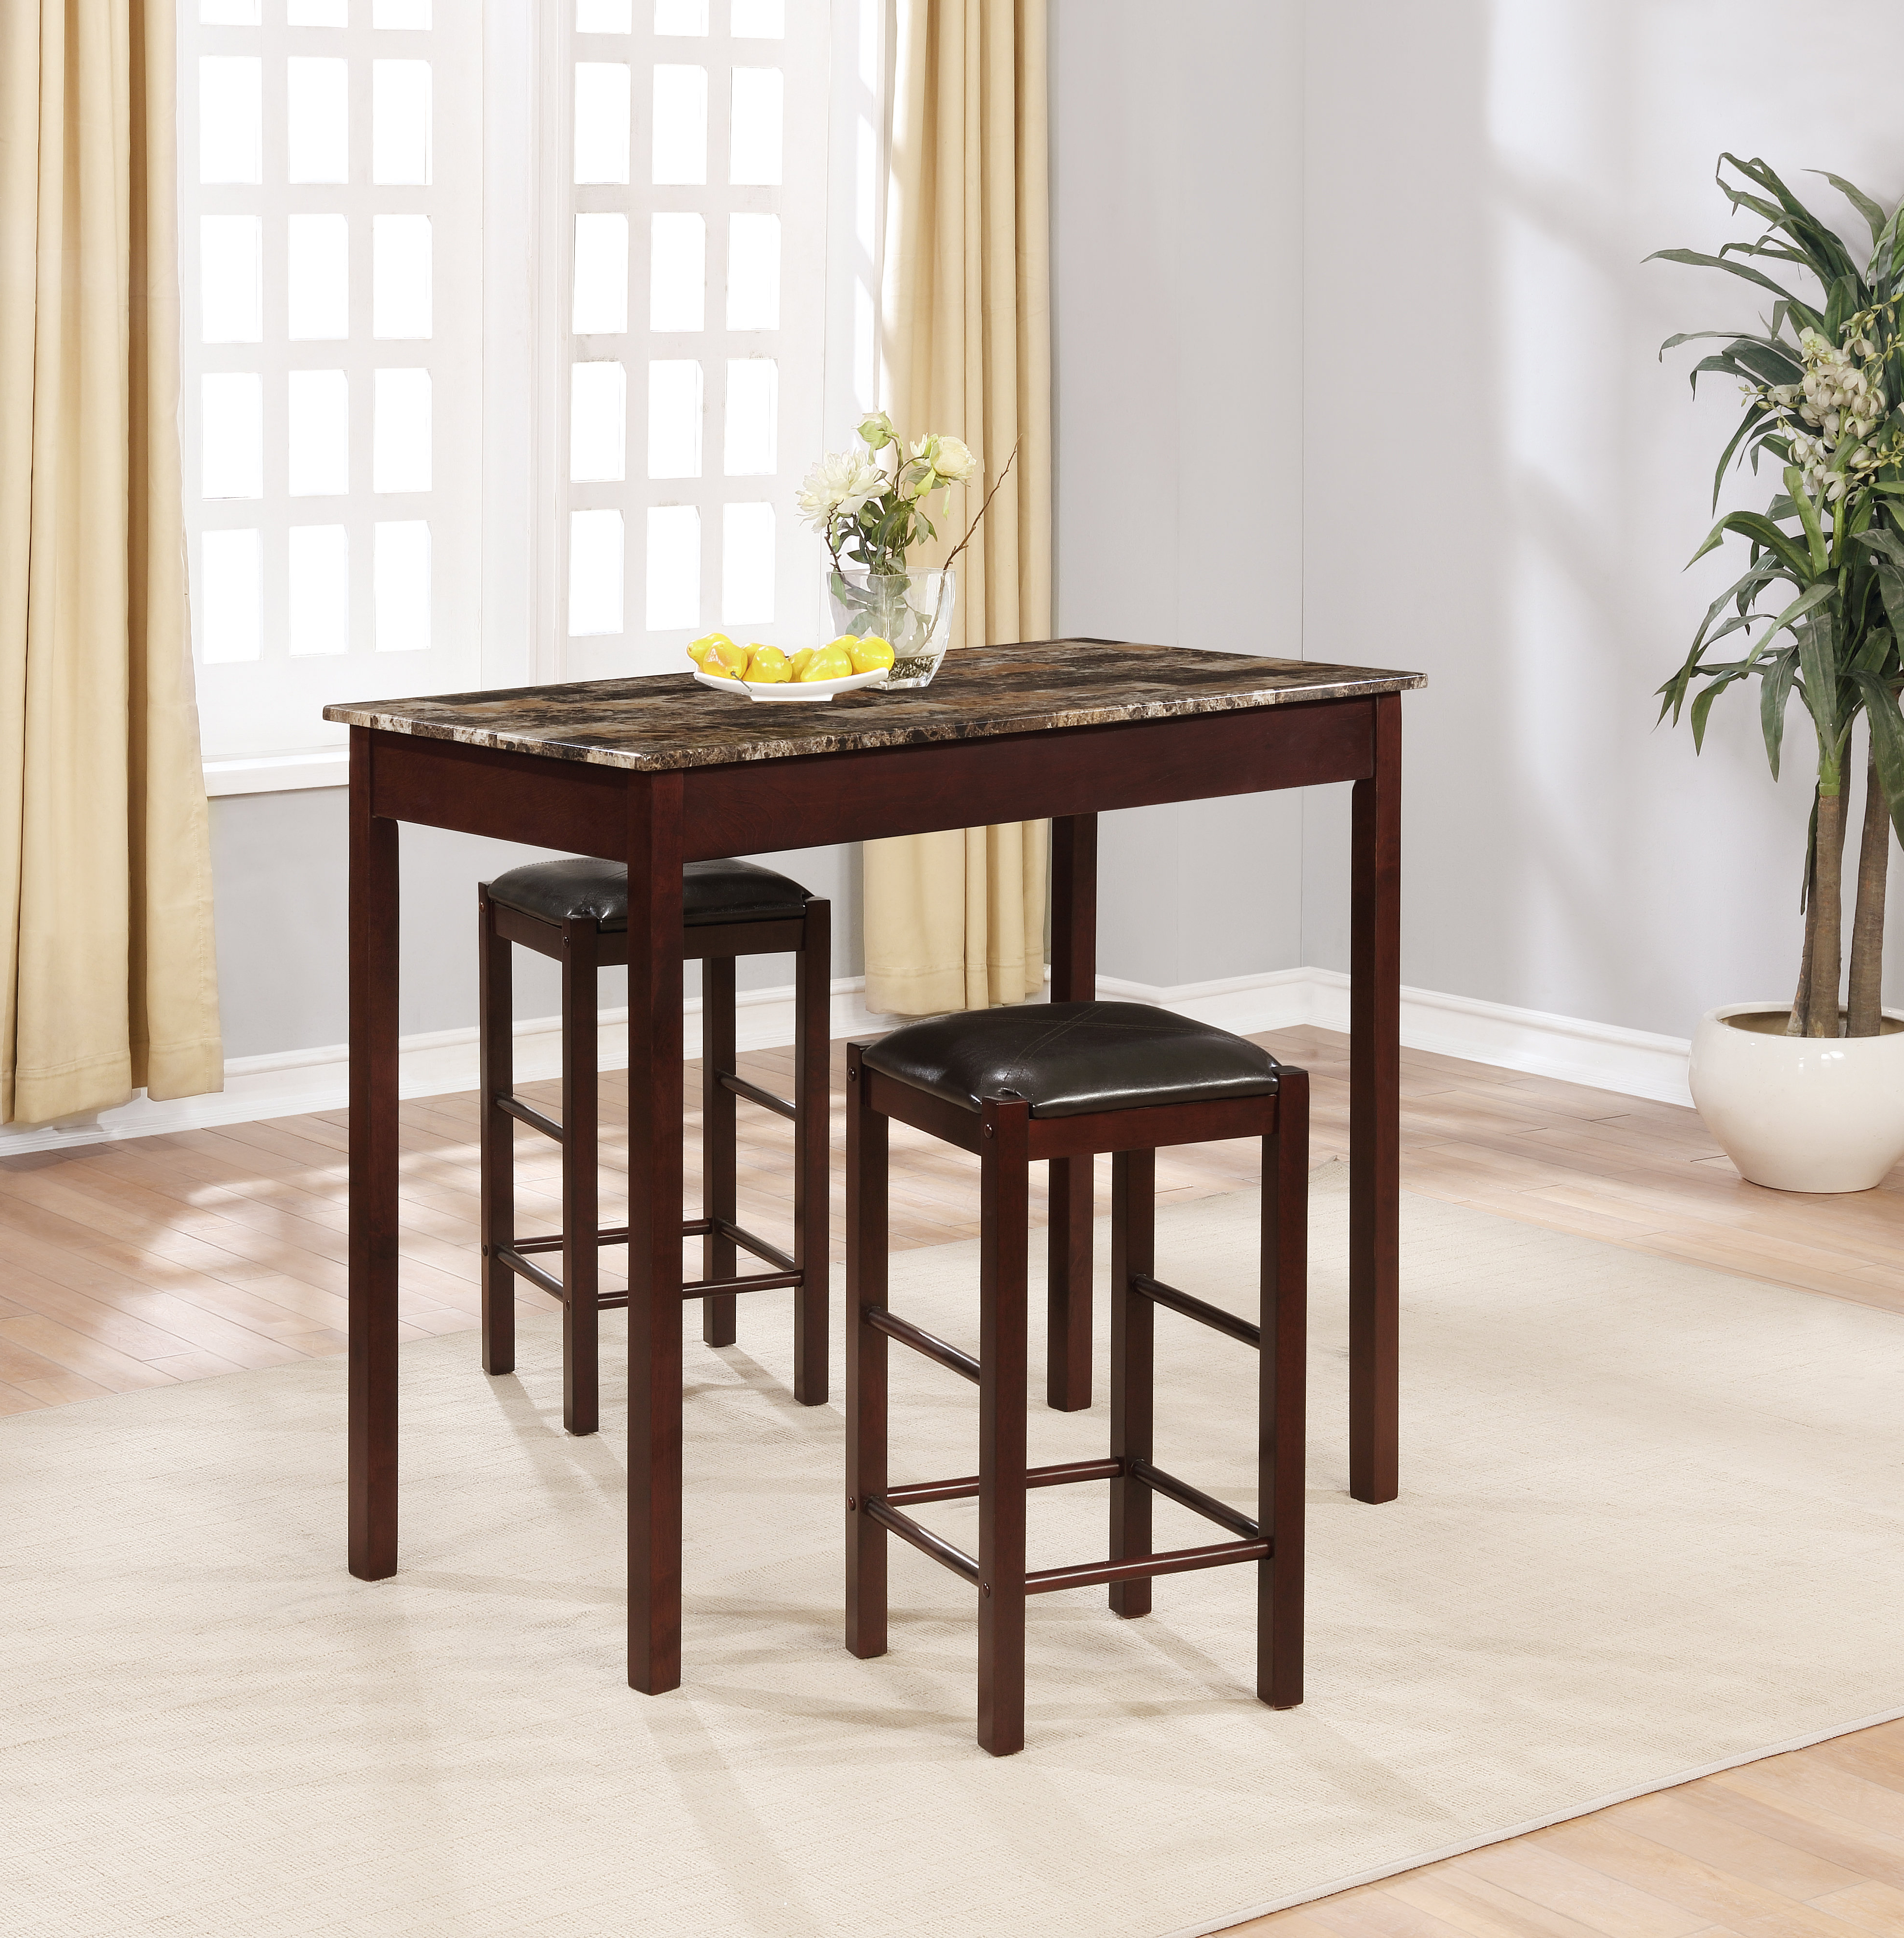 Sheetz 3 Piece Counter Height Dining Sets Within Fashionable Sheetz 3 Piece Counter Height Dining Set (View 22 of 25)